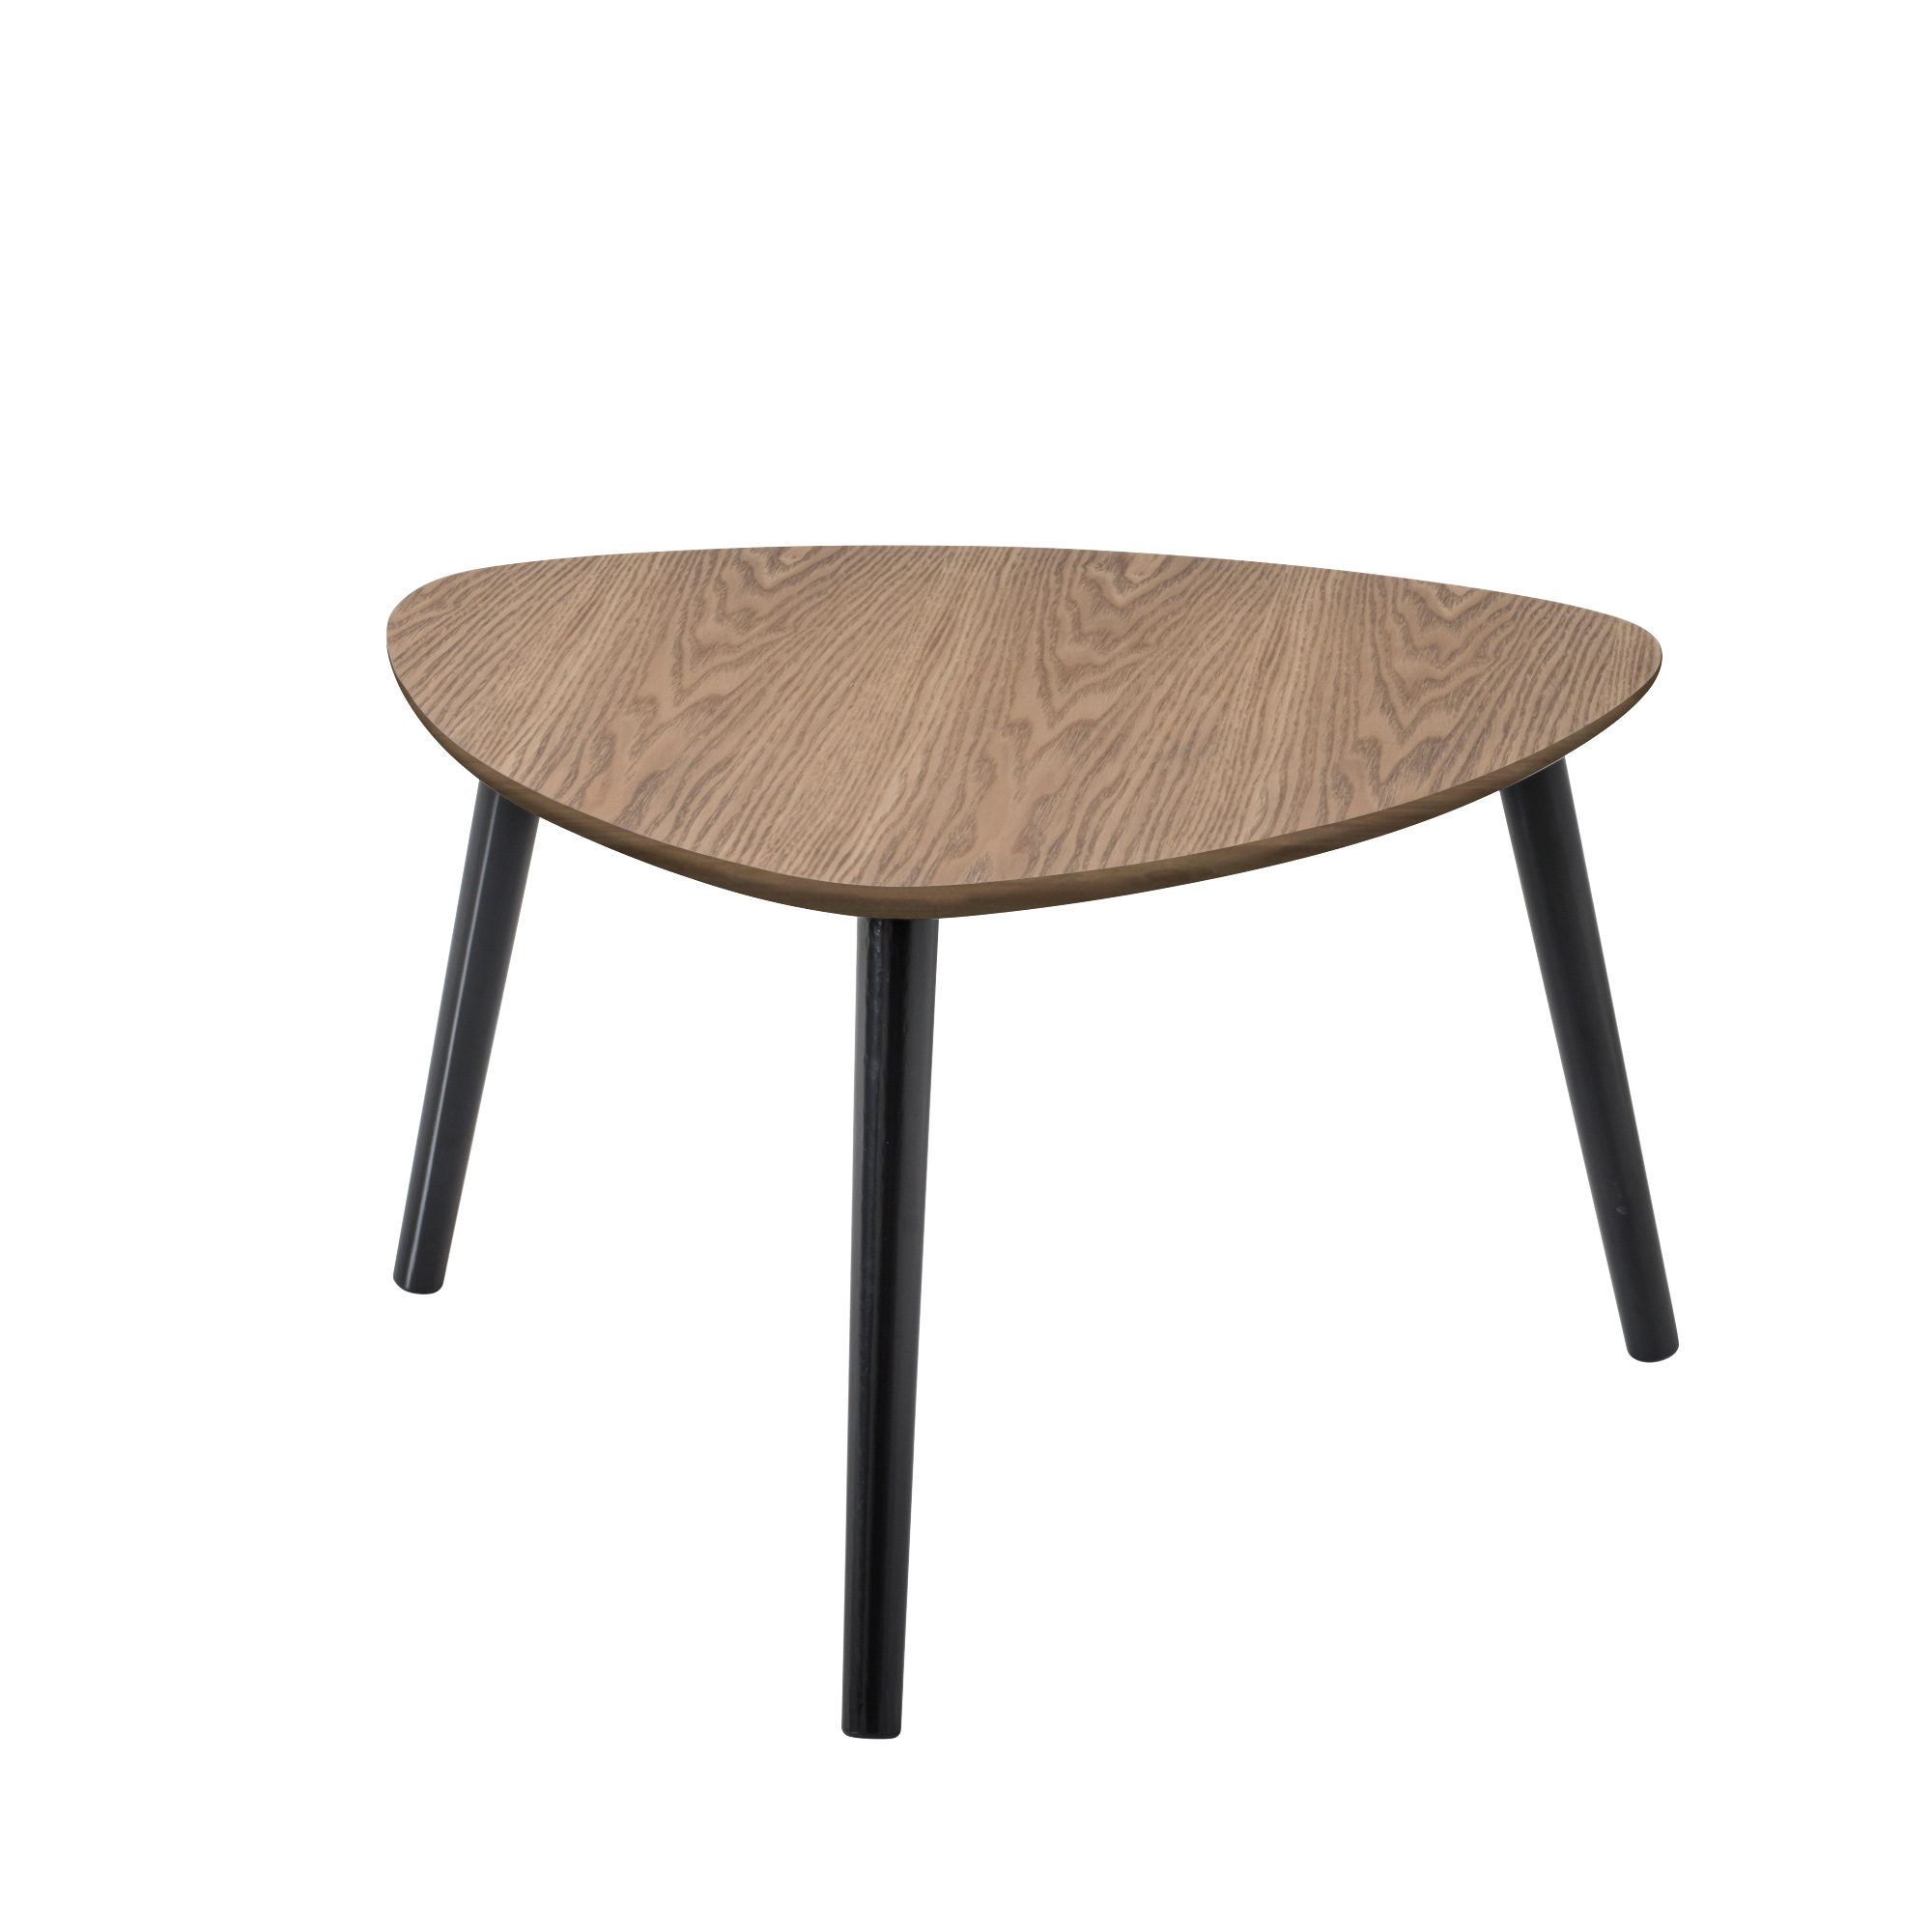 table basse triangulaire contemporaine en bois ch ne cendr chloe matelpro. Black Bedroom Furniture Sets. Home Design Ideas